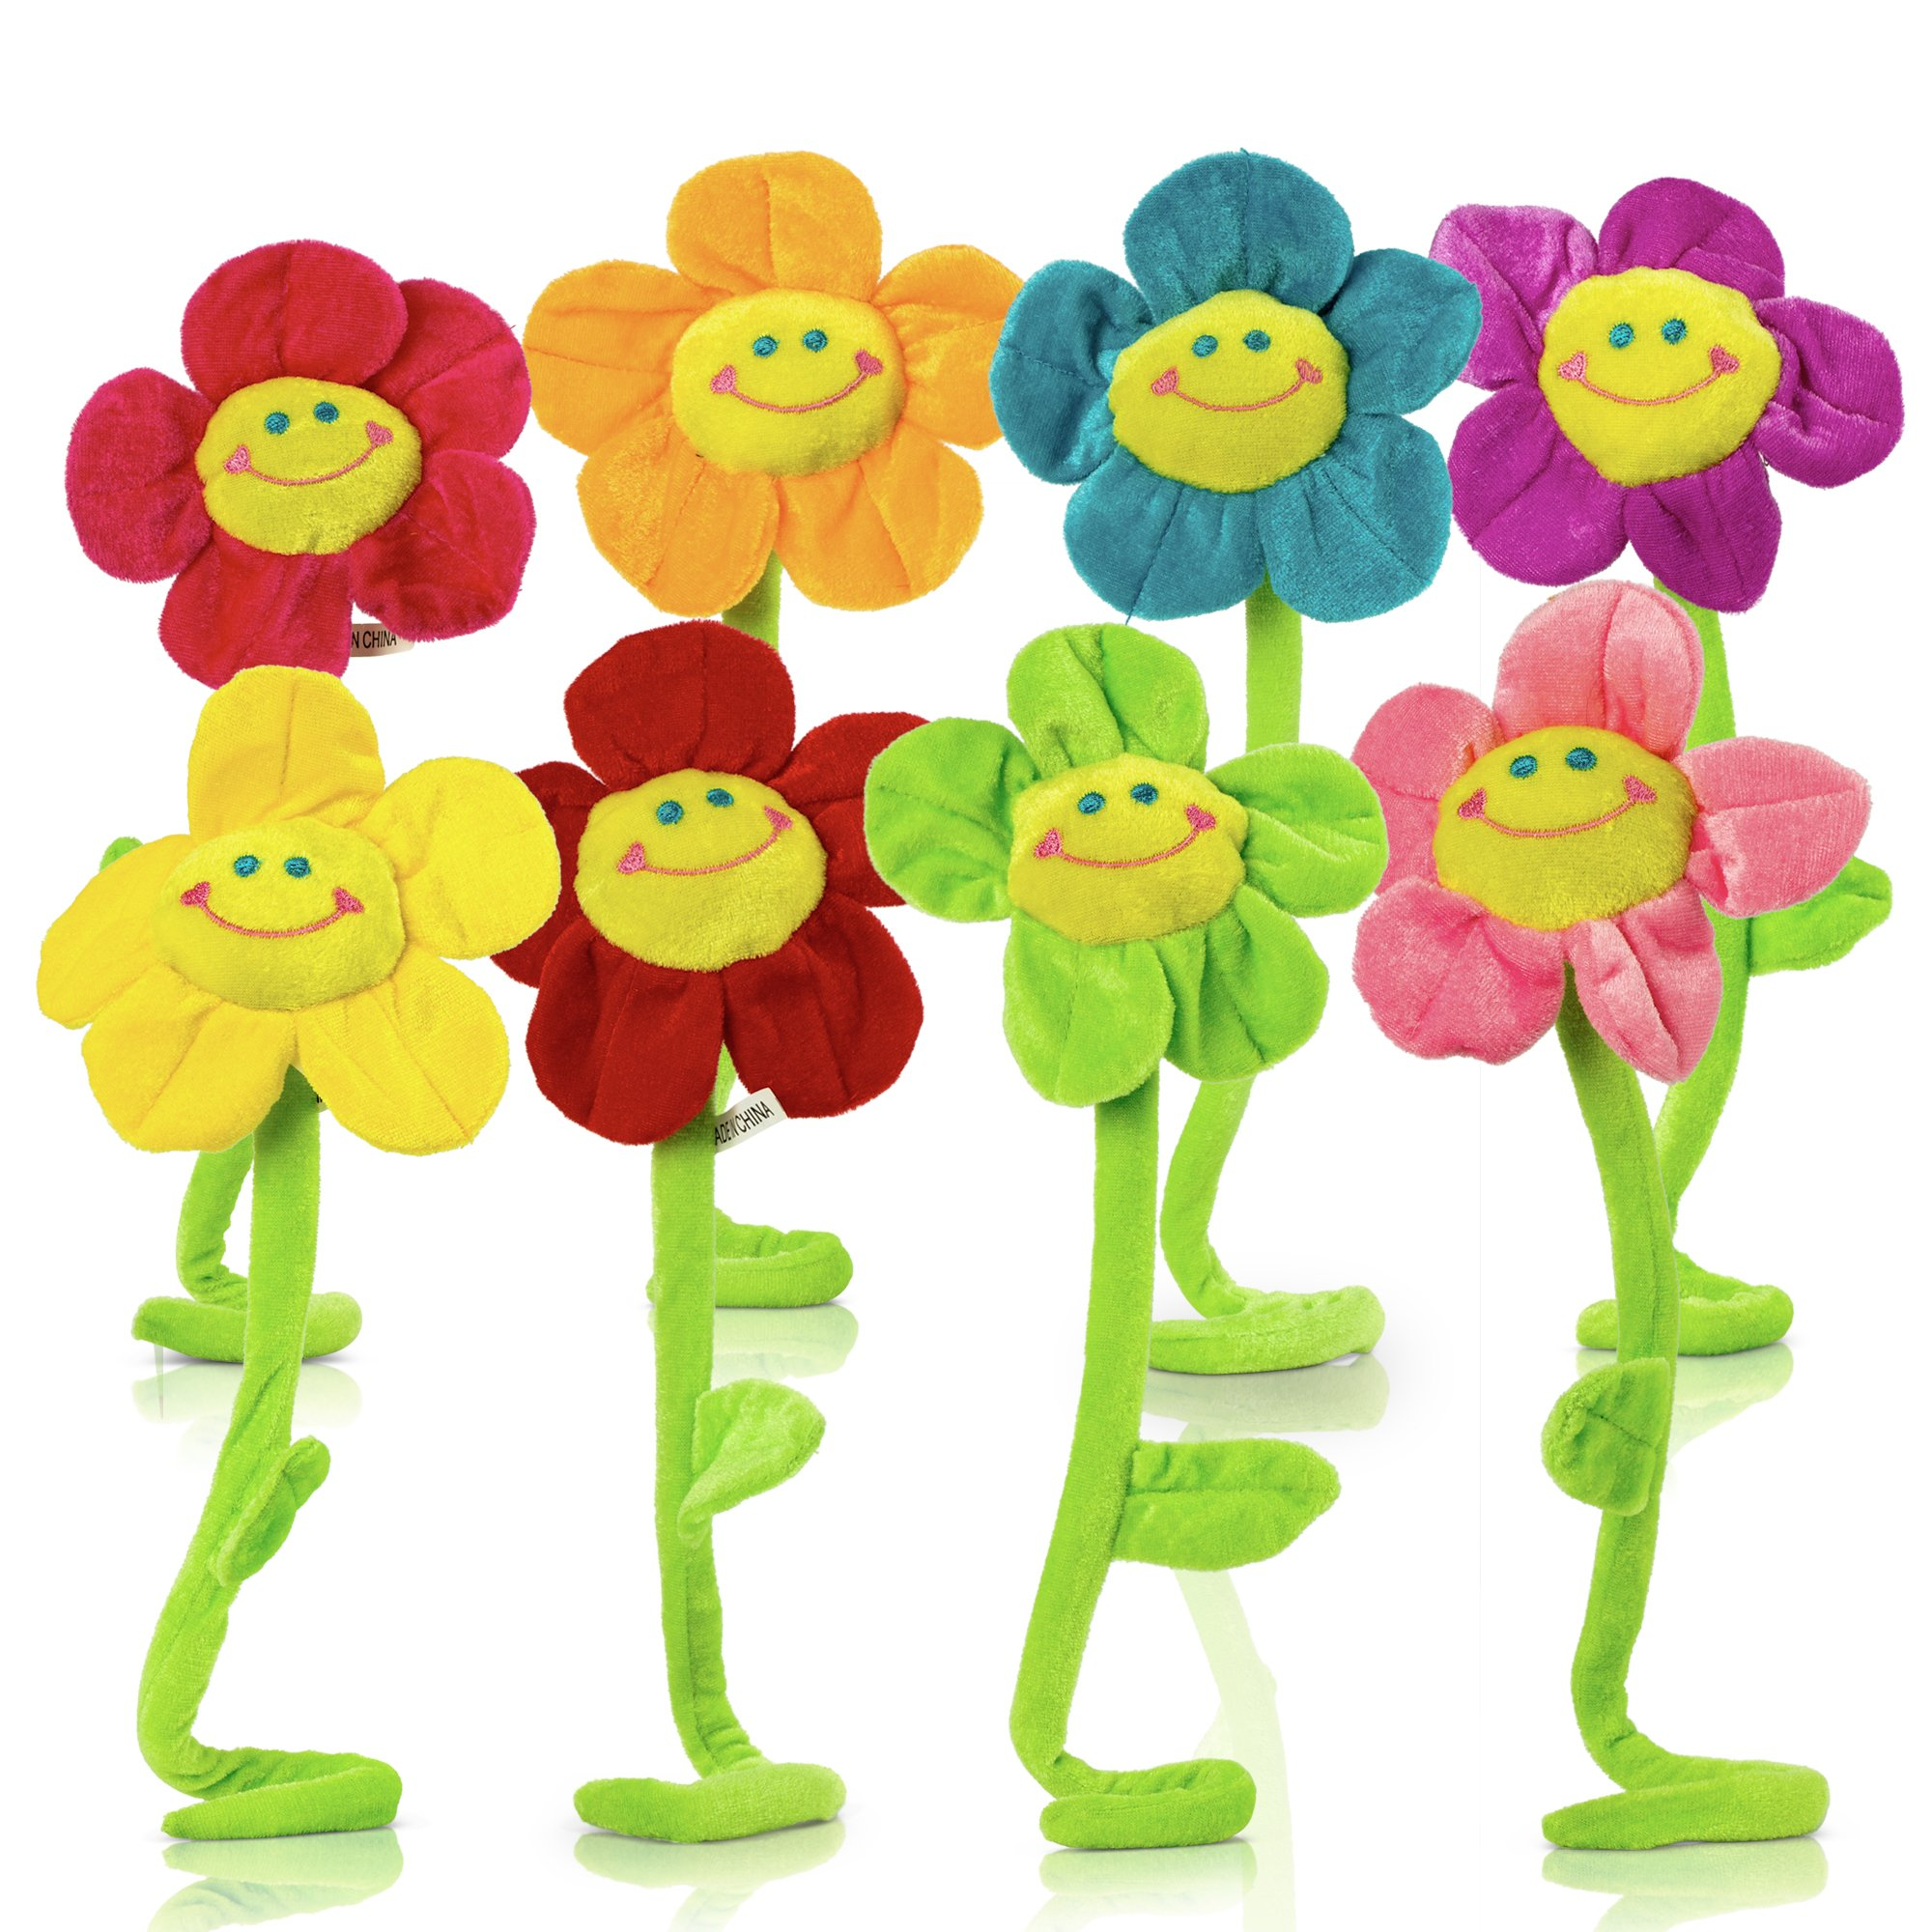 Plush Daisy Flower With Smiley Happy Faces Colorful Soft Bendable Stems Sunflower Toy For Kids Gift Decorations 18'' - 8 Piece